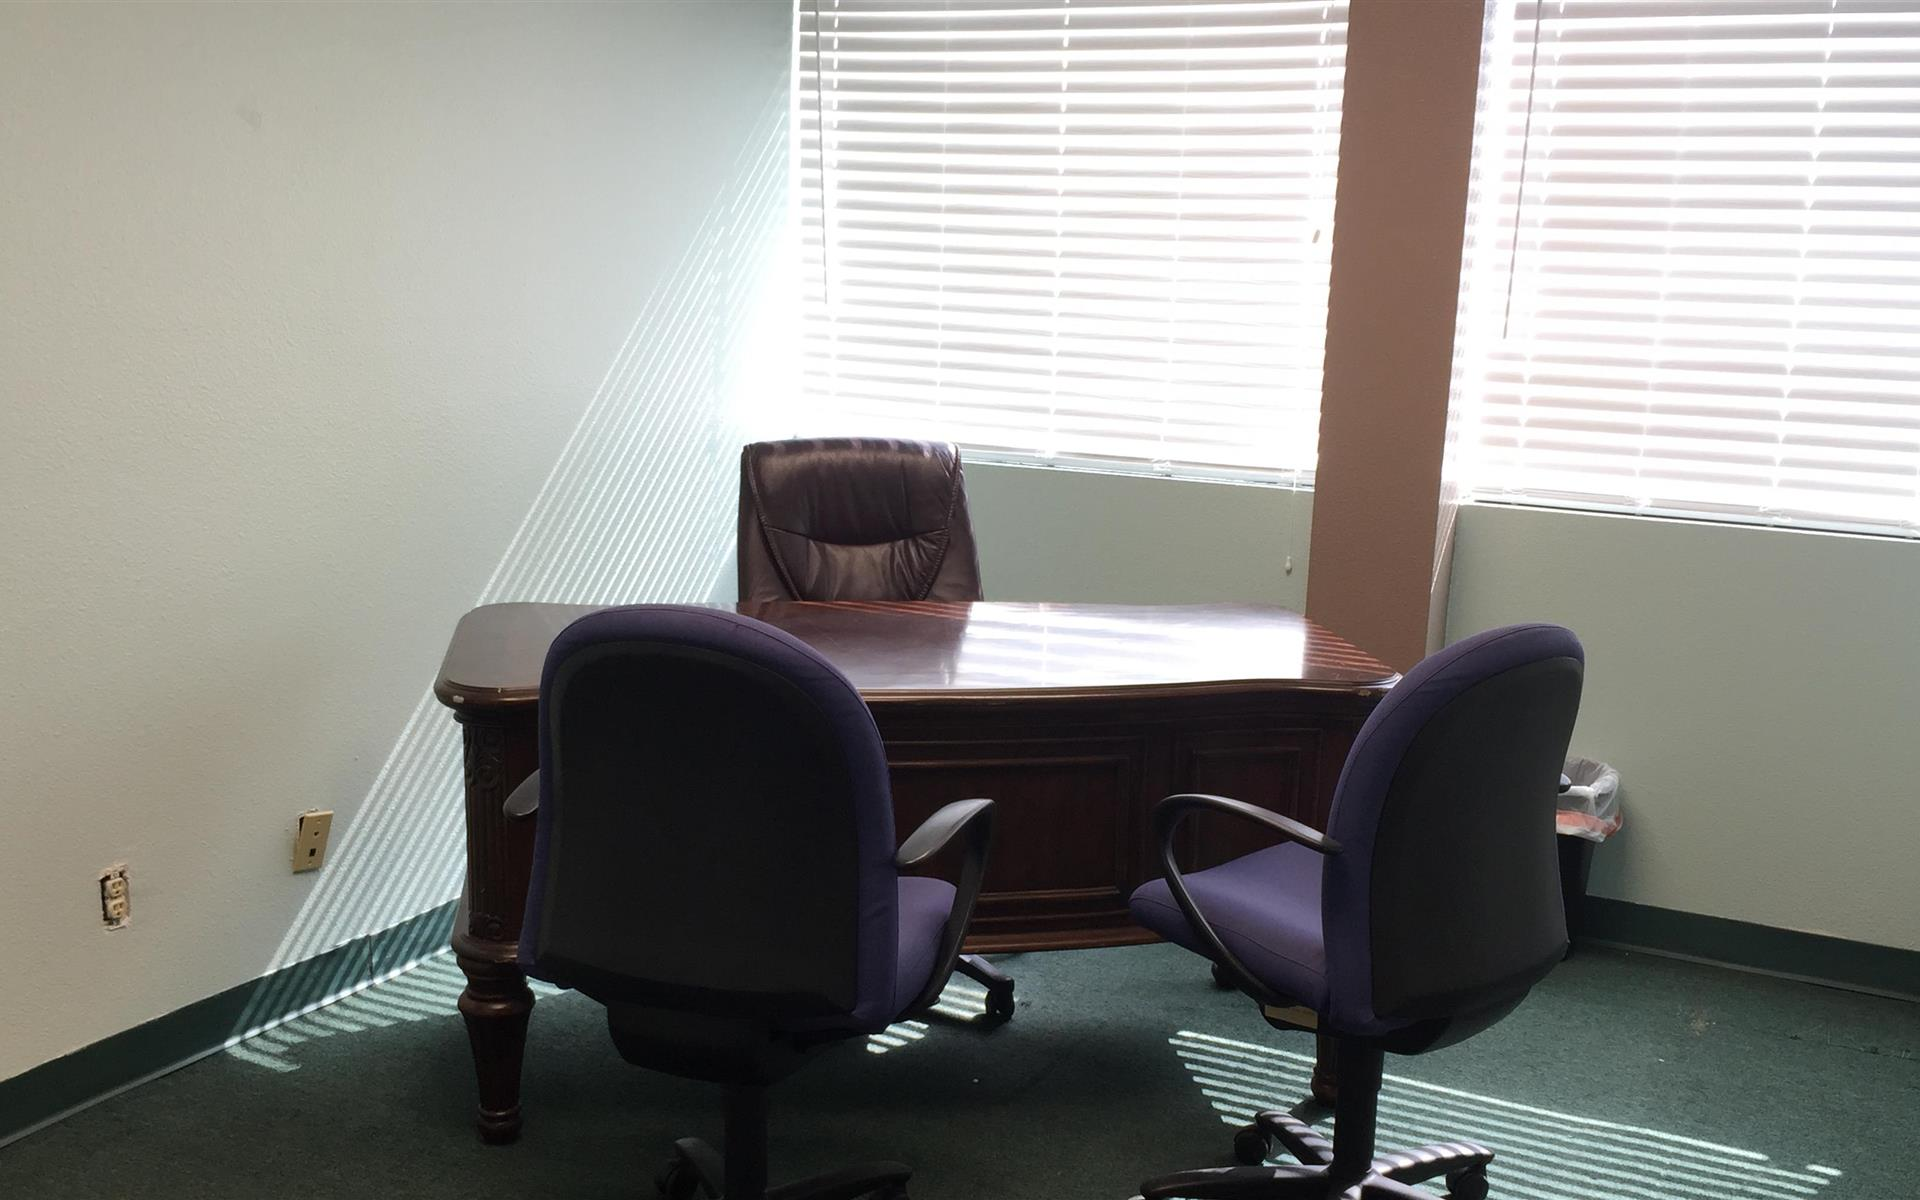 The Met Center AV - Executive Office Suite 515 - F1